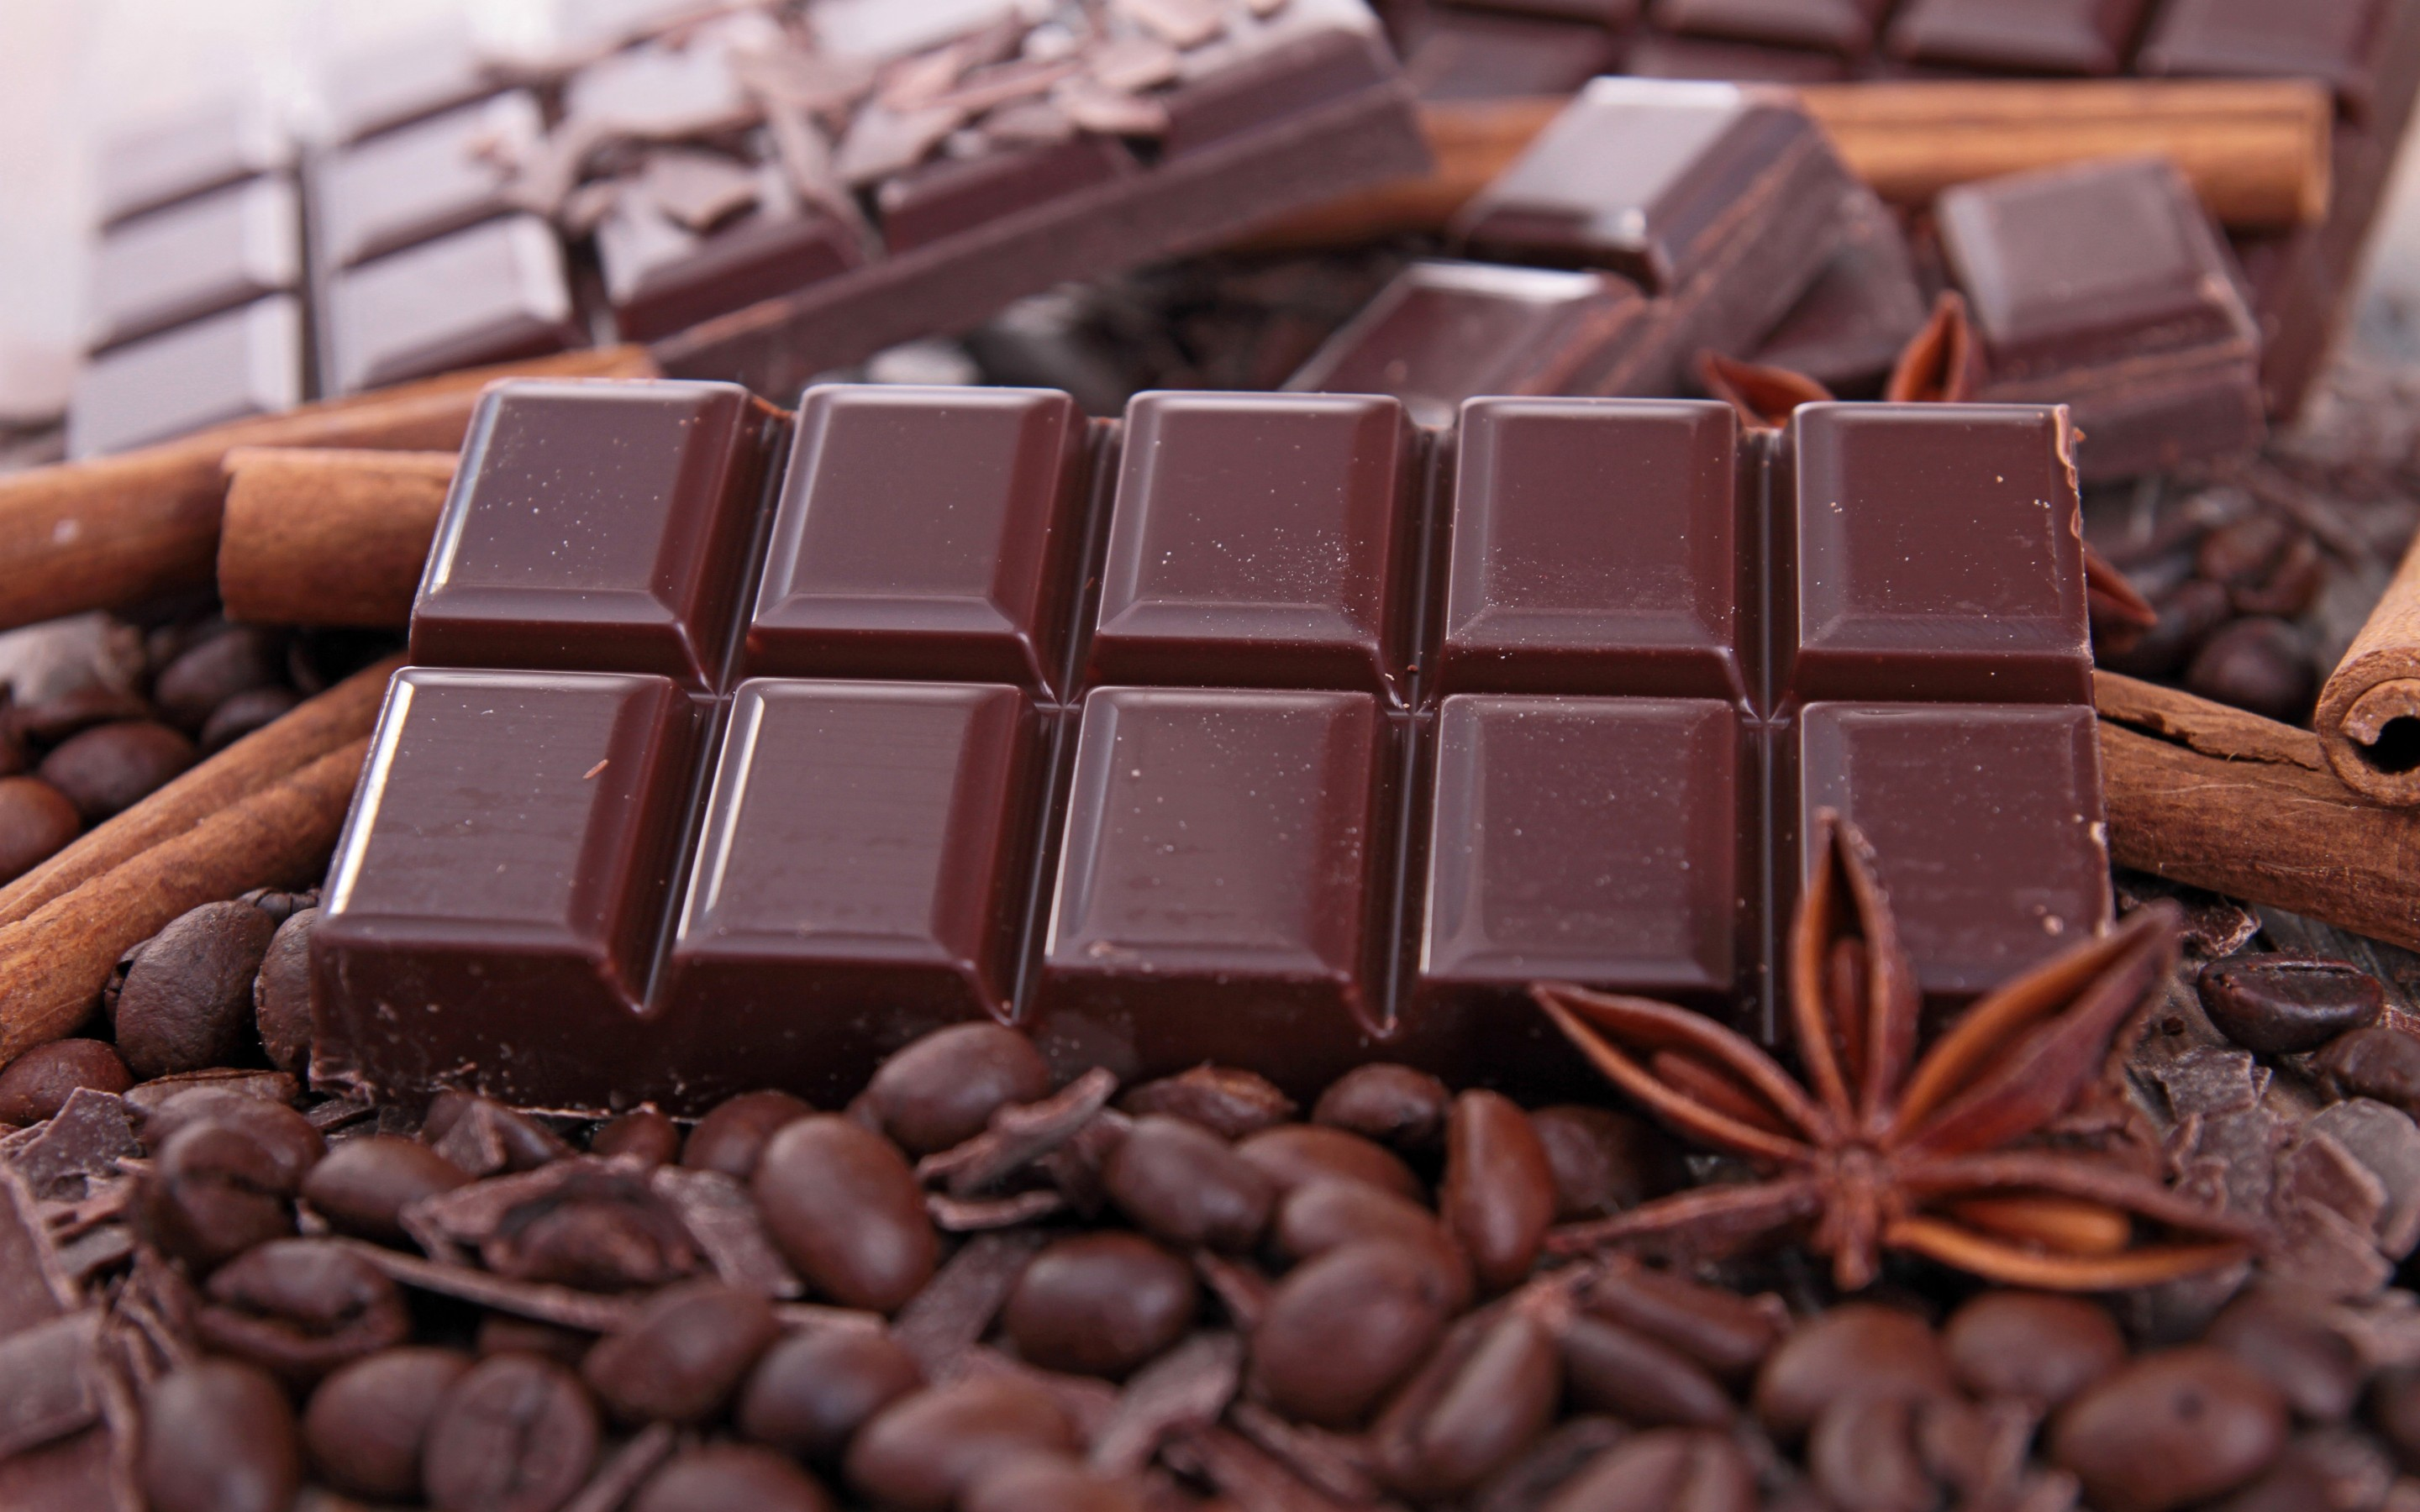 Extratour Chocolate 8 Fun Day For Facts Chocolate And About World Love Pines